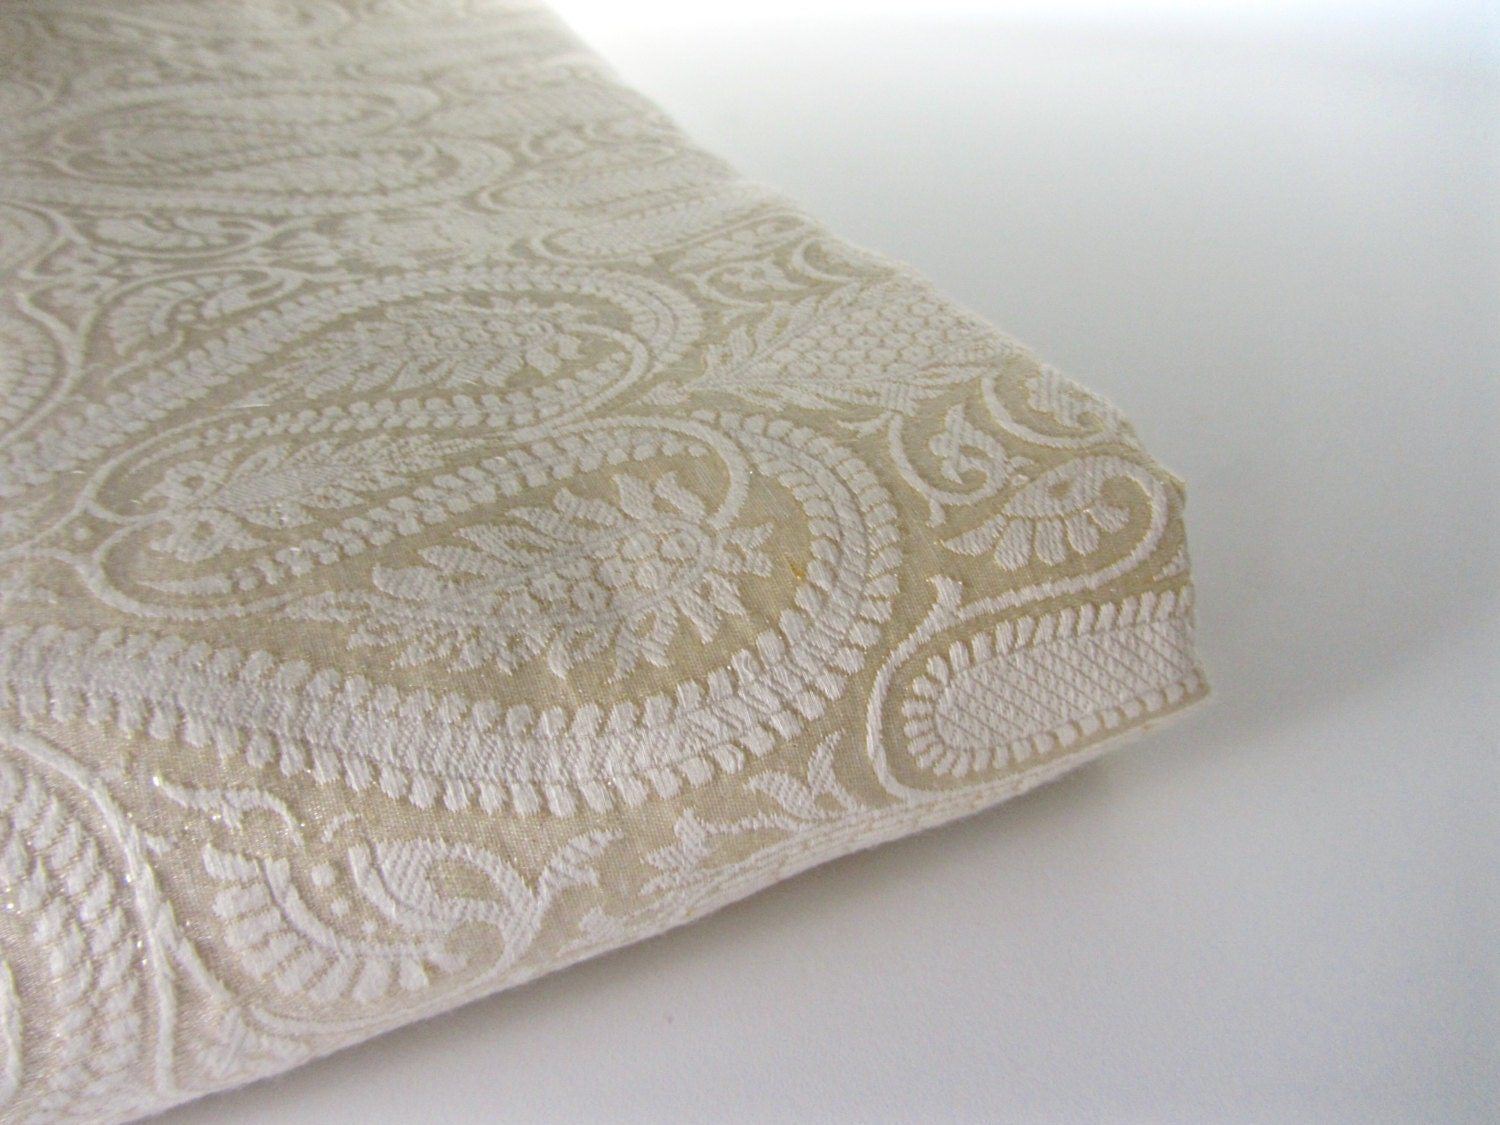 Pearl White Beige Textured Silk Brocade Fabric Nr 705 1 4